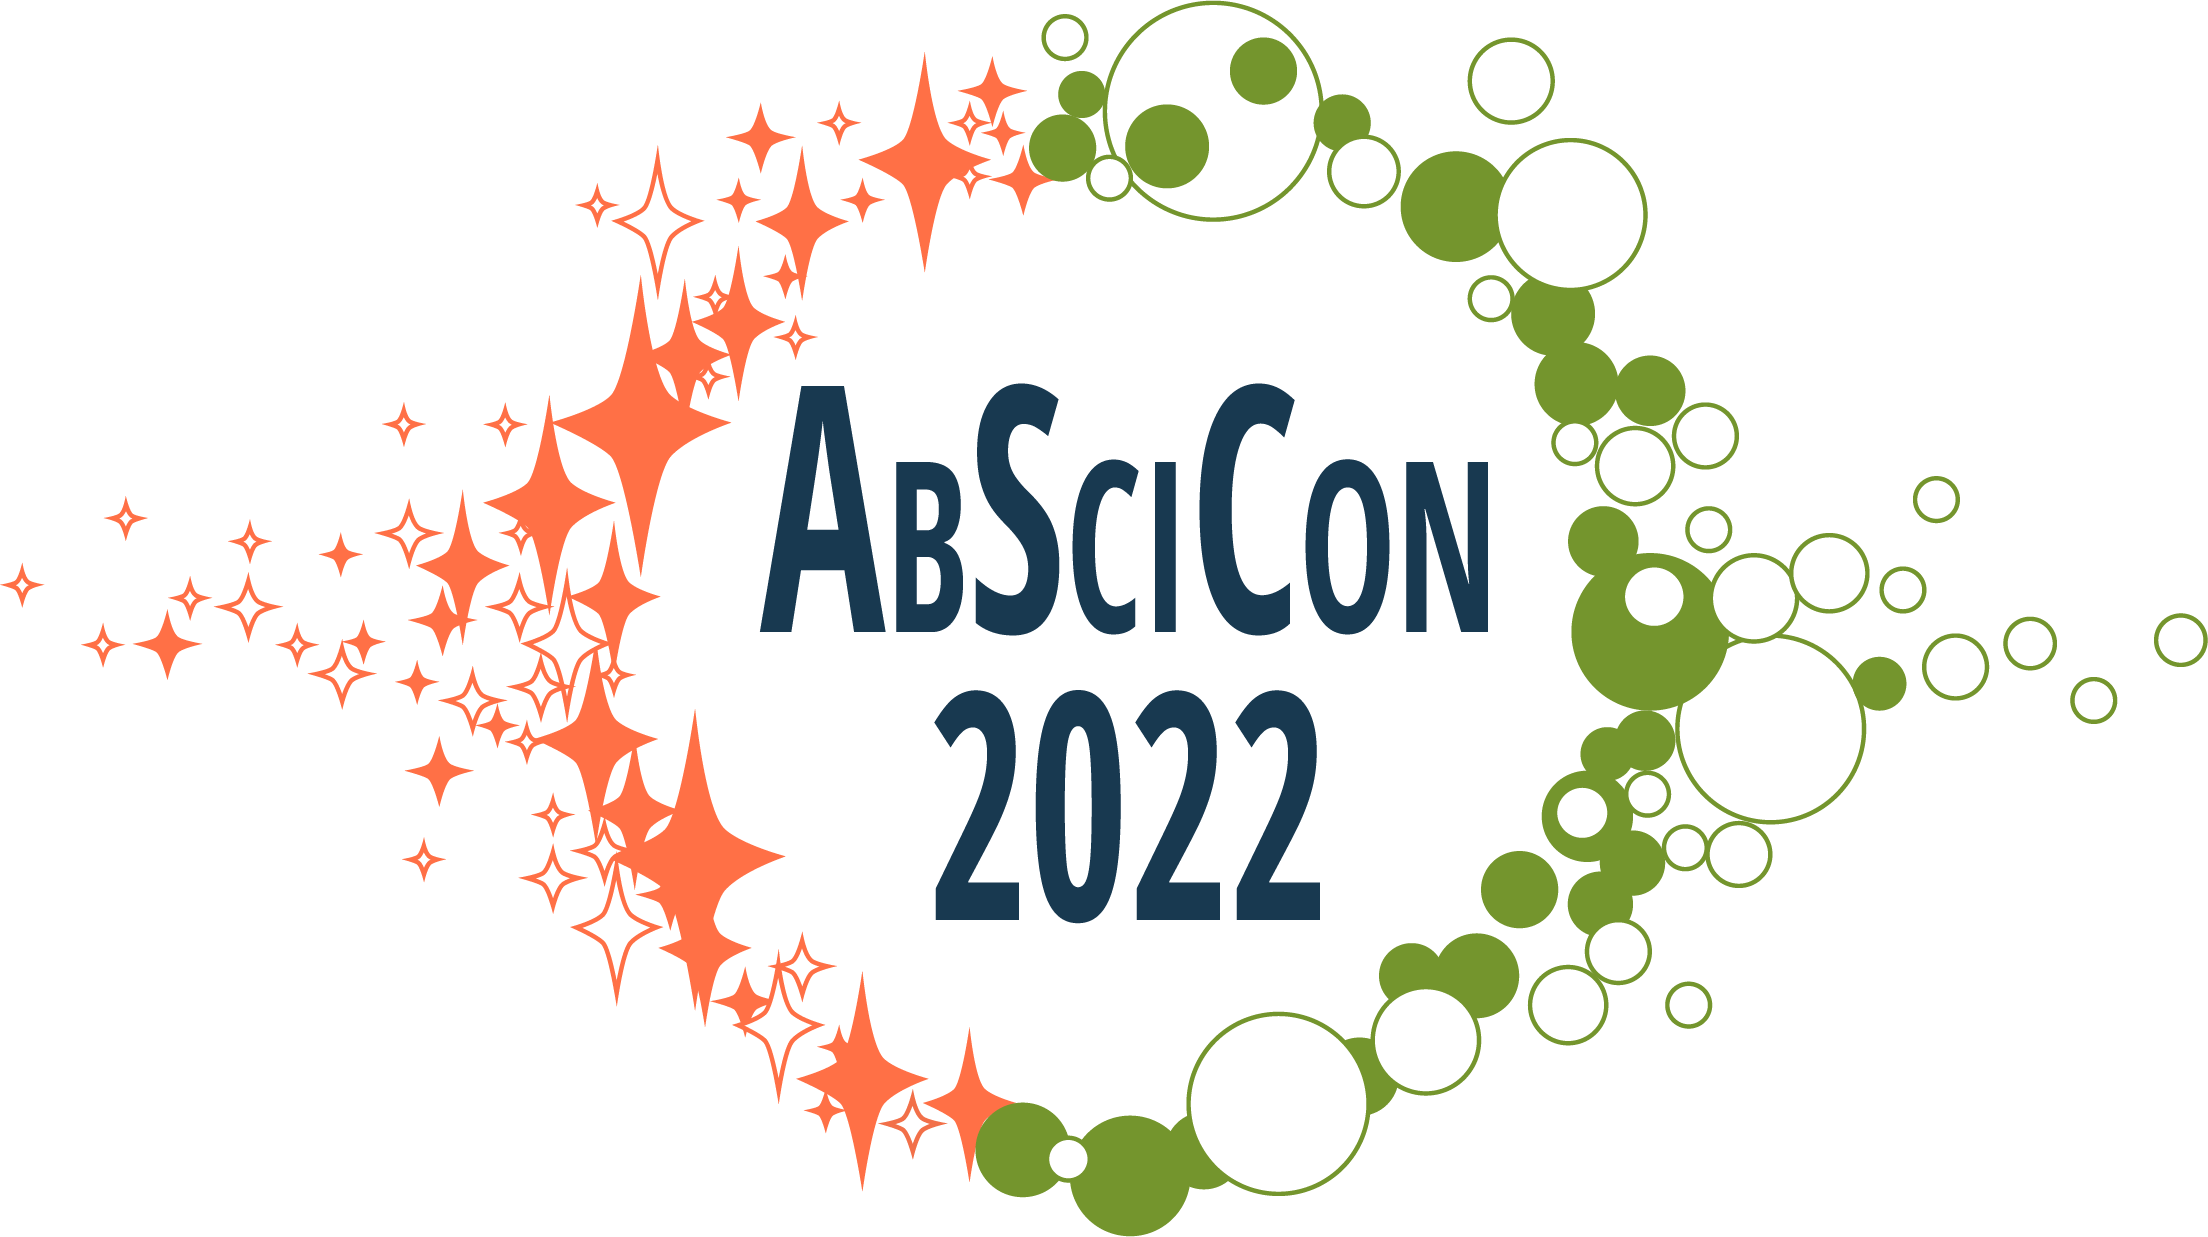 AbSciCon 2022